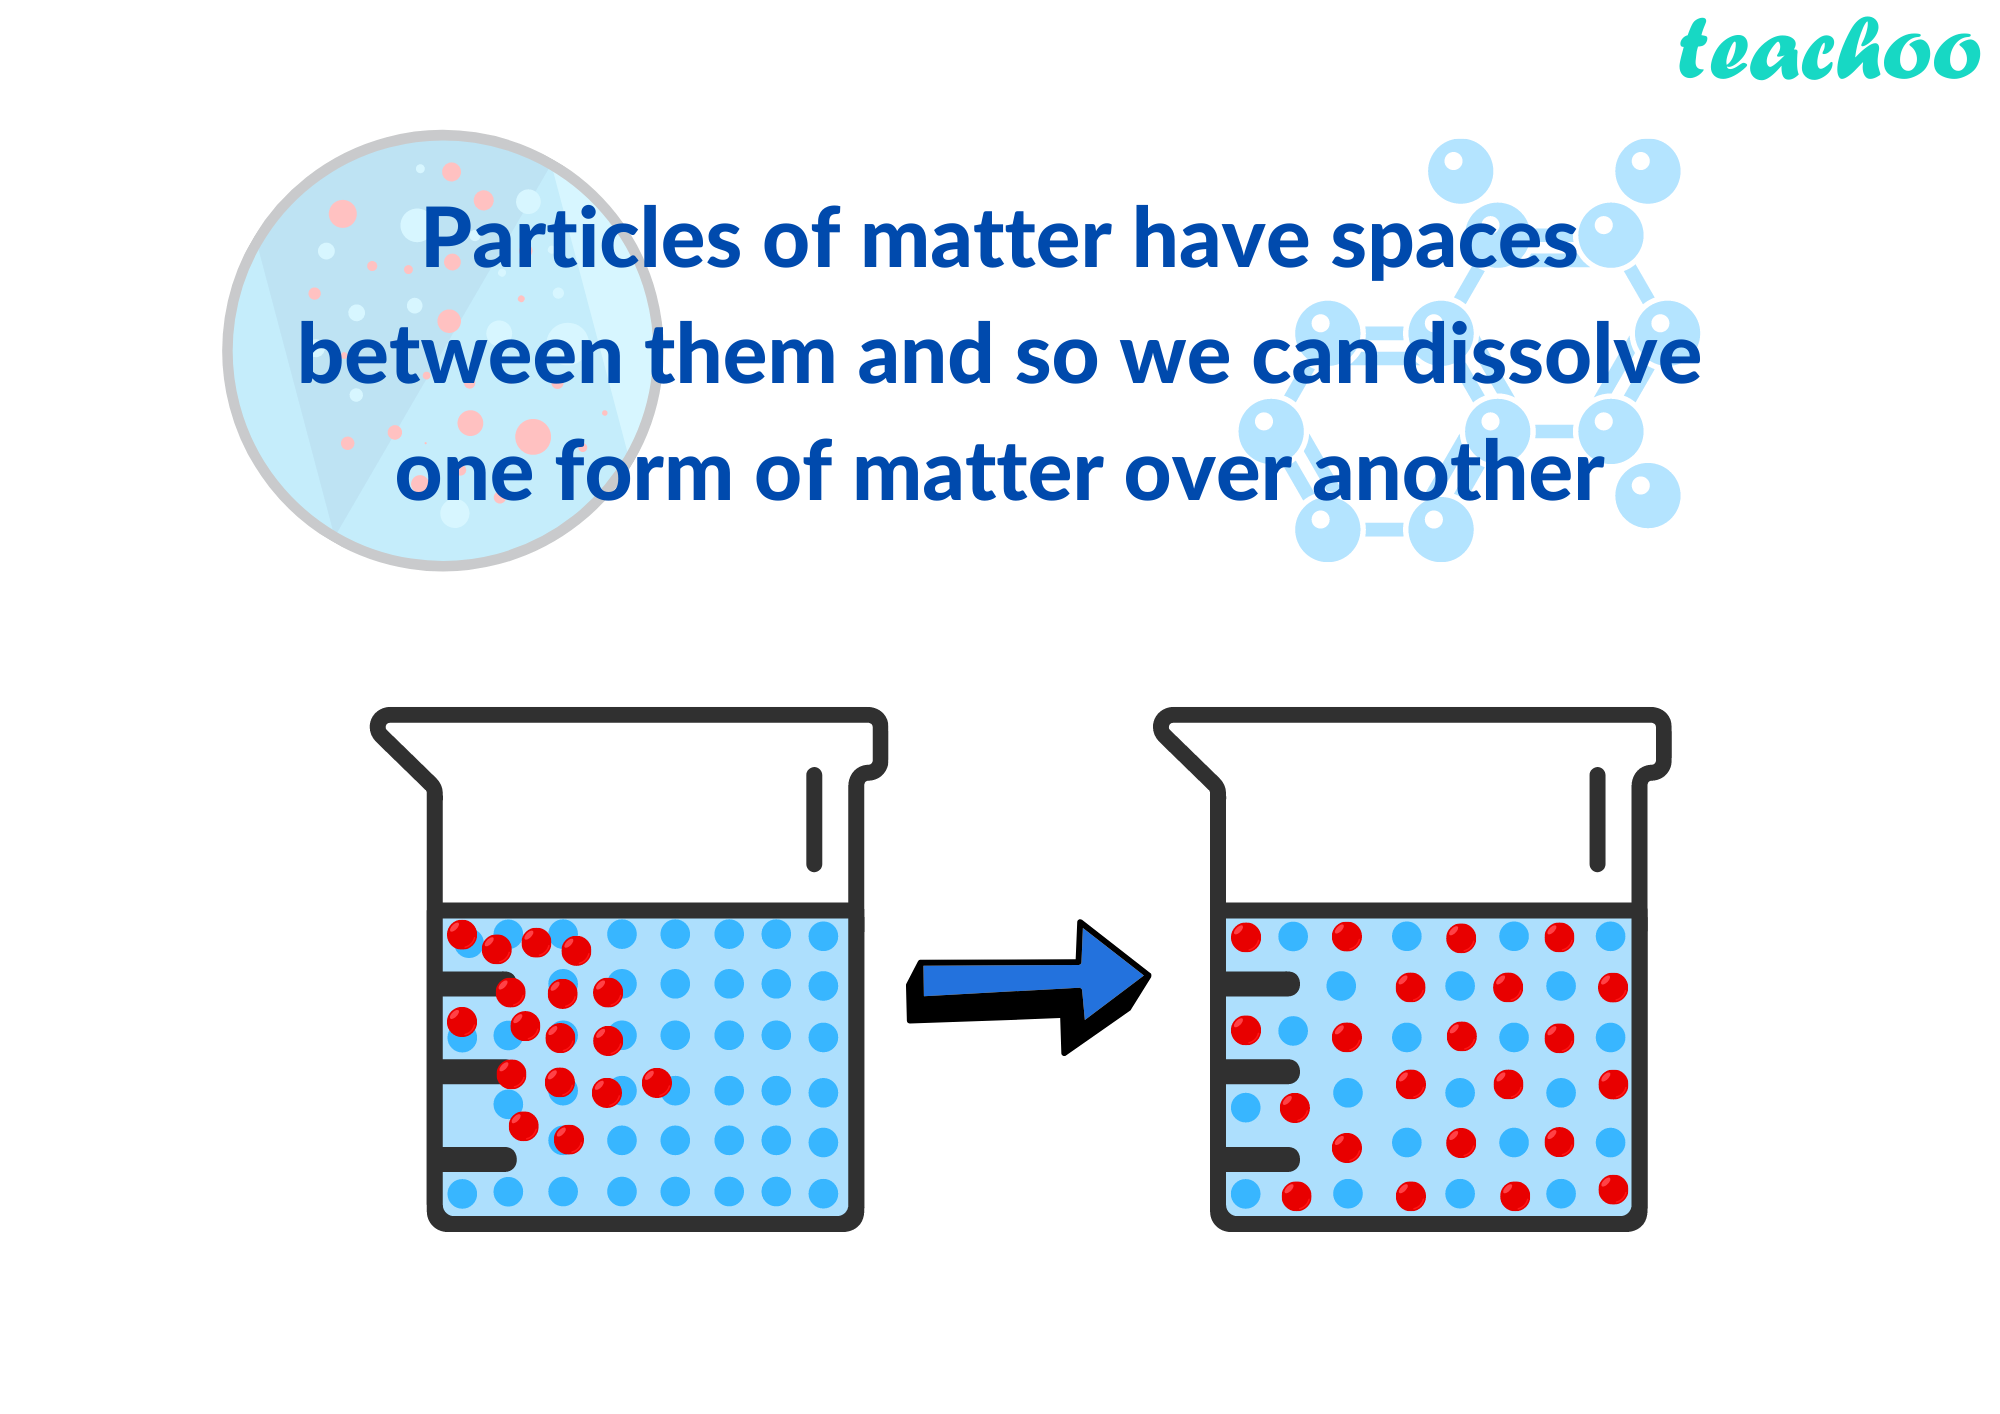 Particles of matter have spaces between them and so we can dissolve one form of matter over another - Teachoo.png